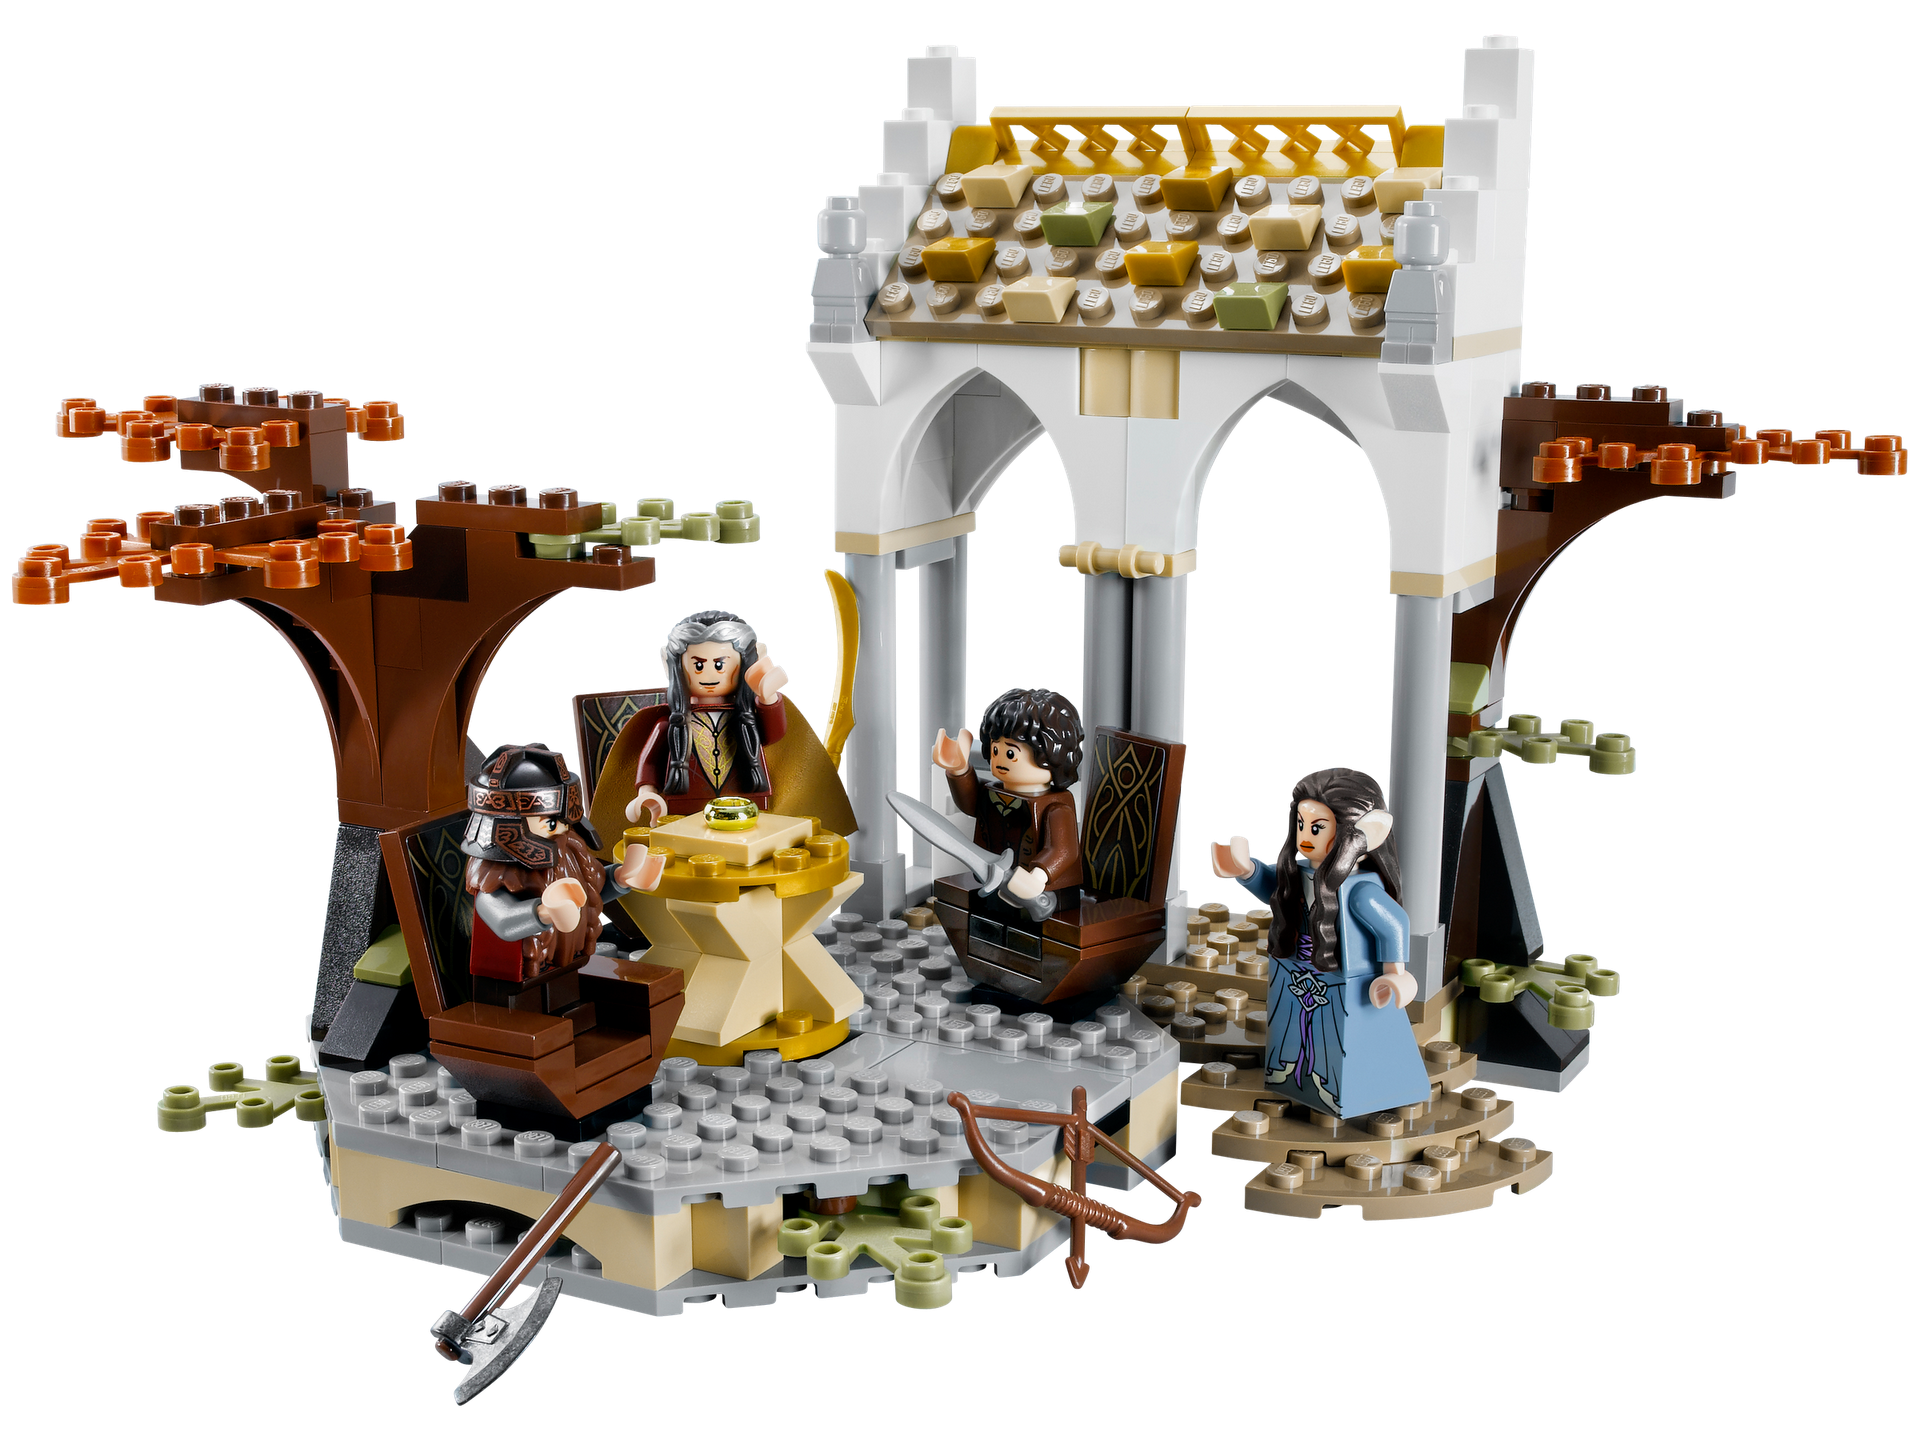 Lego The Lord of The Rings - Wallpaper, High Definition, High Quality ...